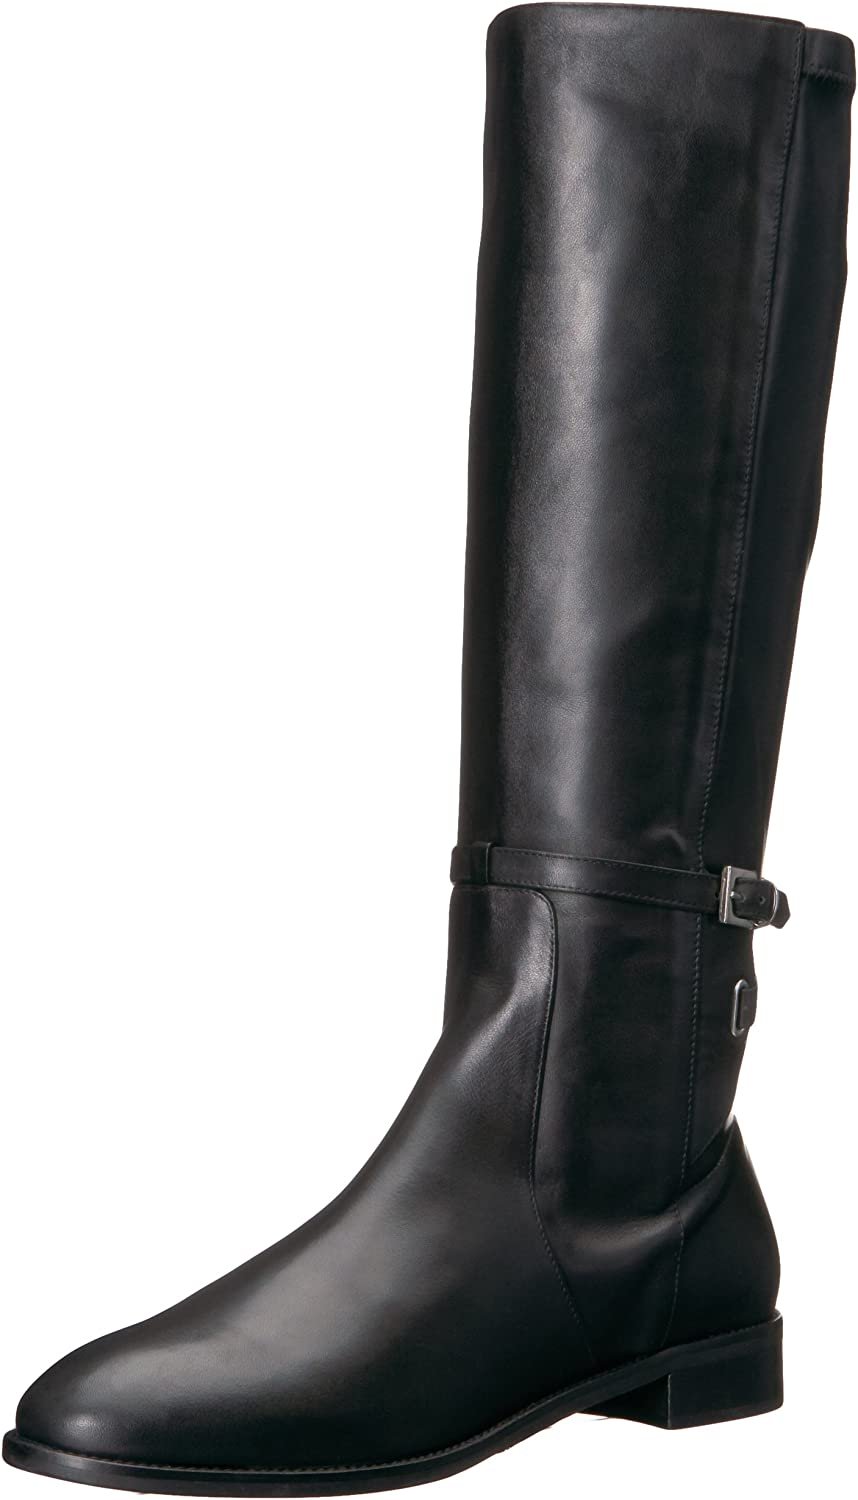 Charles David Women's Royce Equestrian Boot, Black, 38 Medium EU (7.5,8,8.5 US)